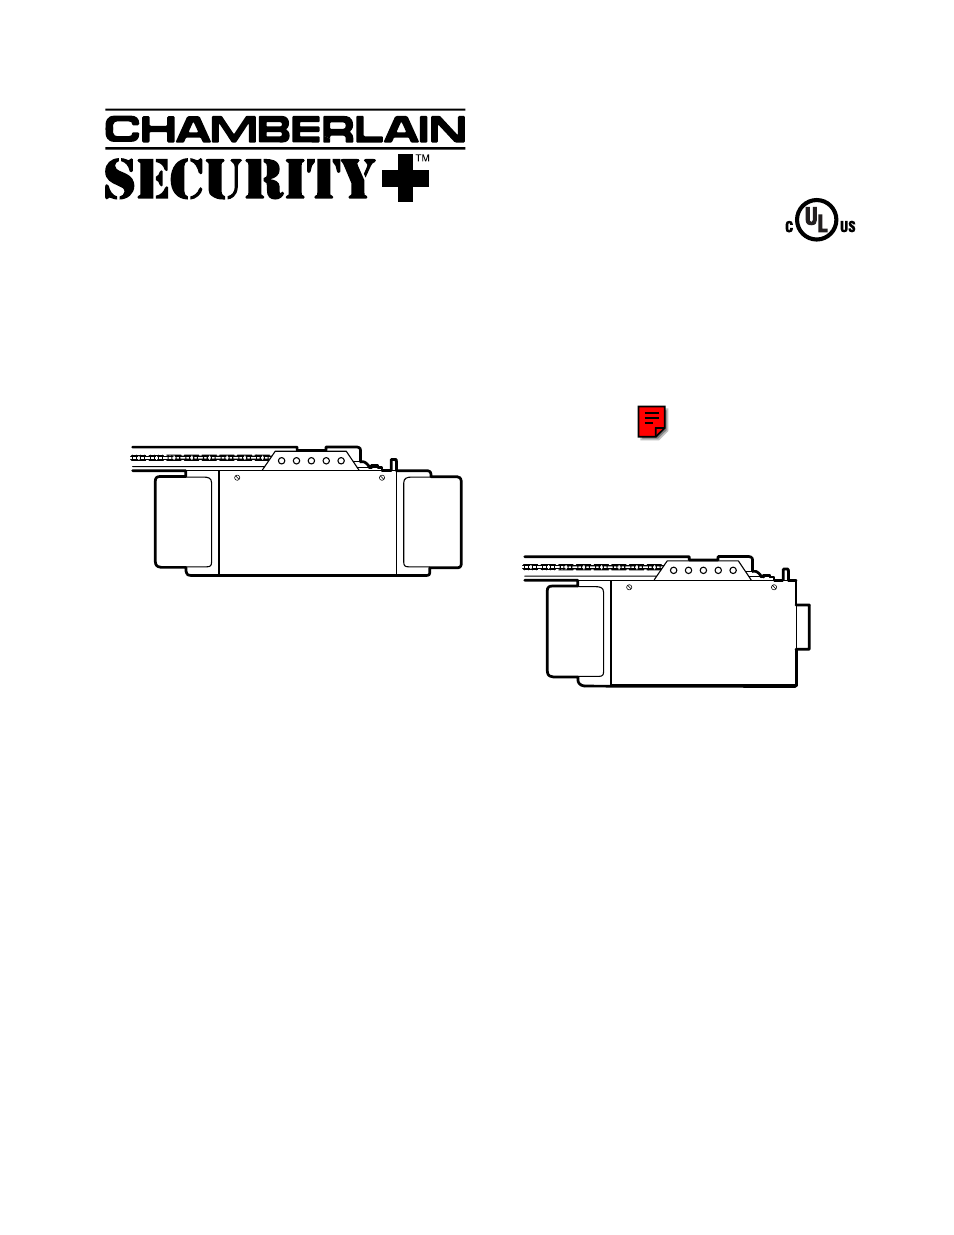 Wiring Diagram For 1htzvl6r3fha52965diagram Chamberlain 7220 1 2hp Page1 Garage Door Opener At Cita